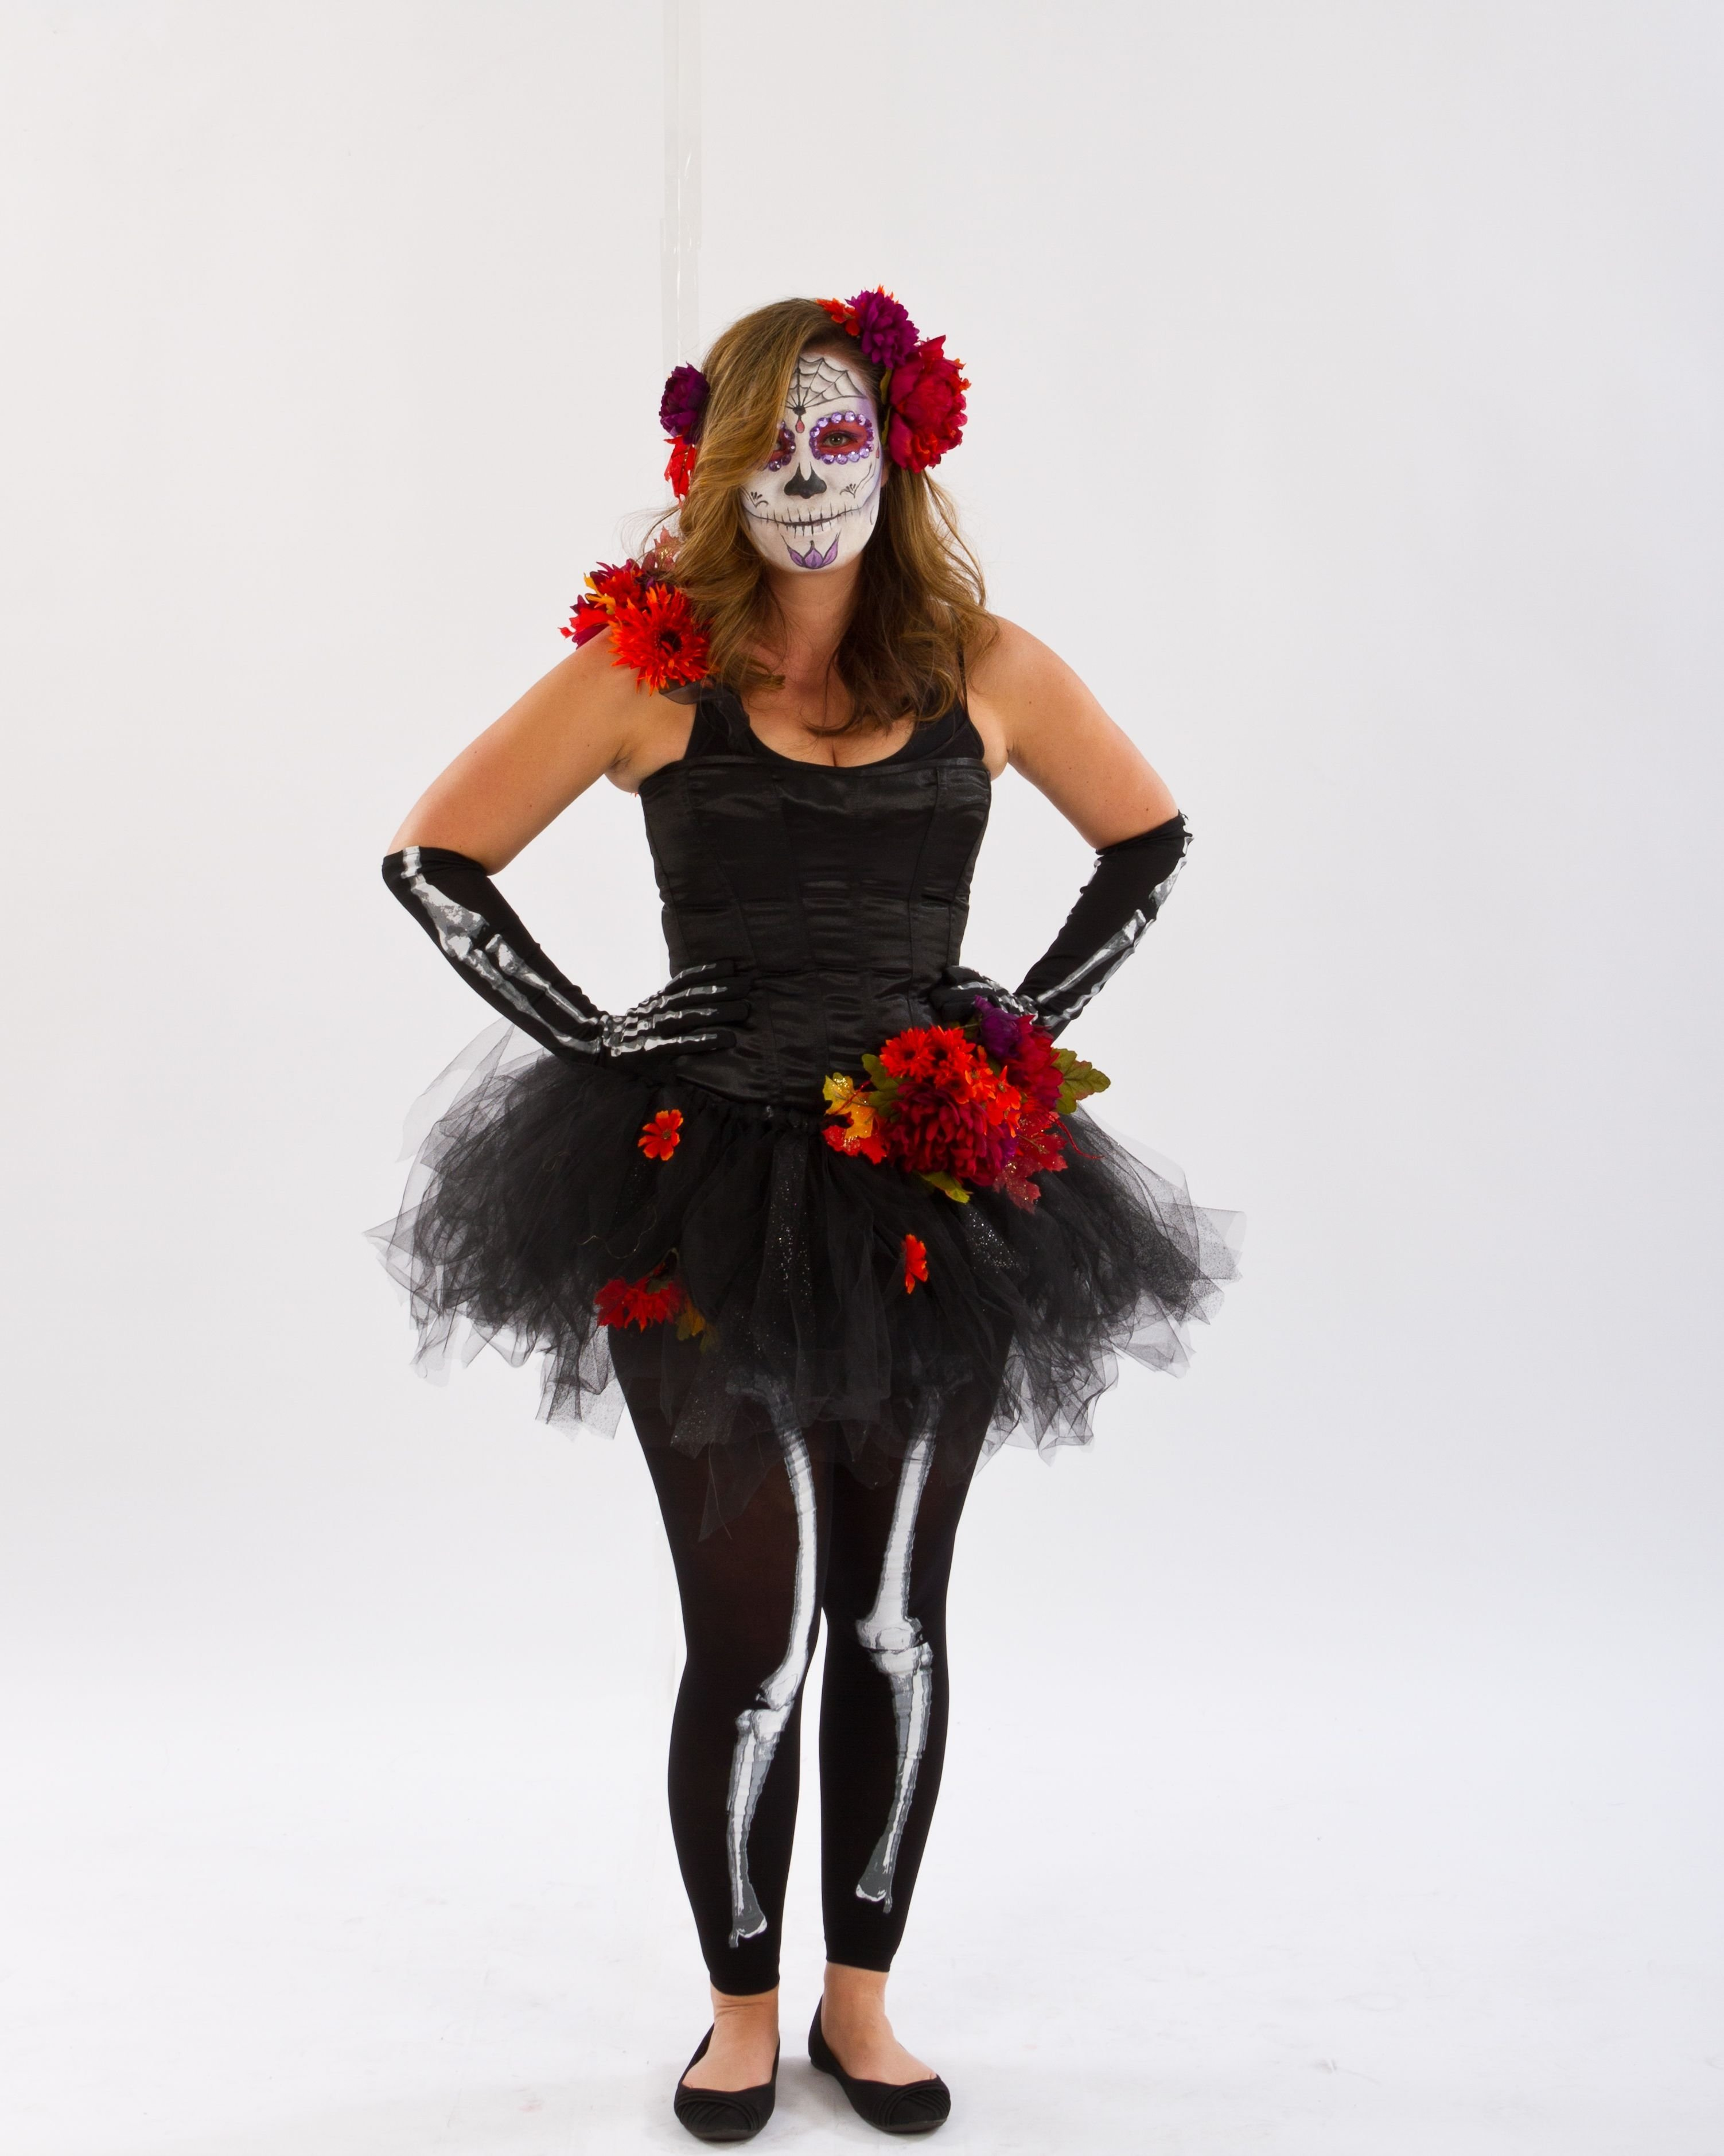 10 Nice Day Of The Dead Costumes Ideas to die for diy day of the dead costume starting with mix match 1 2020